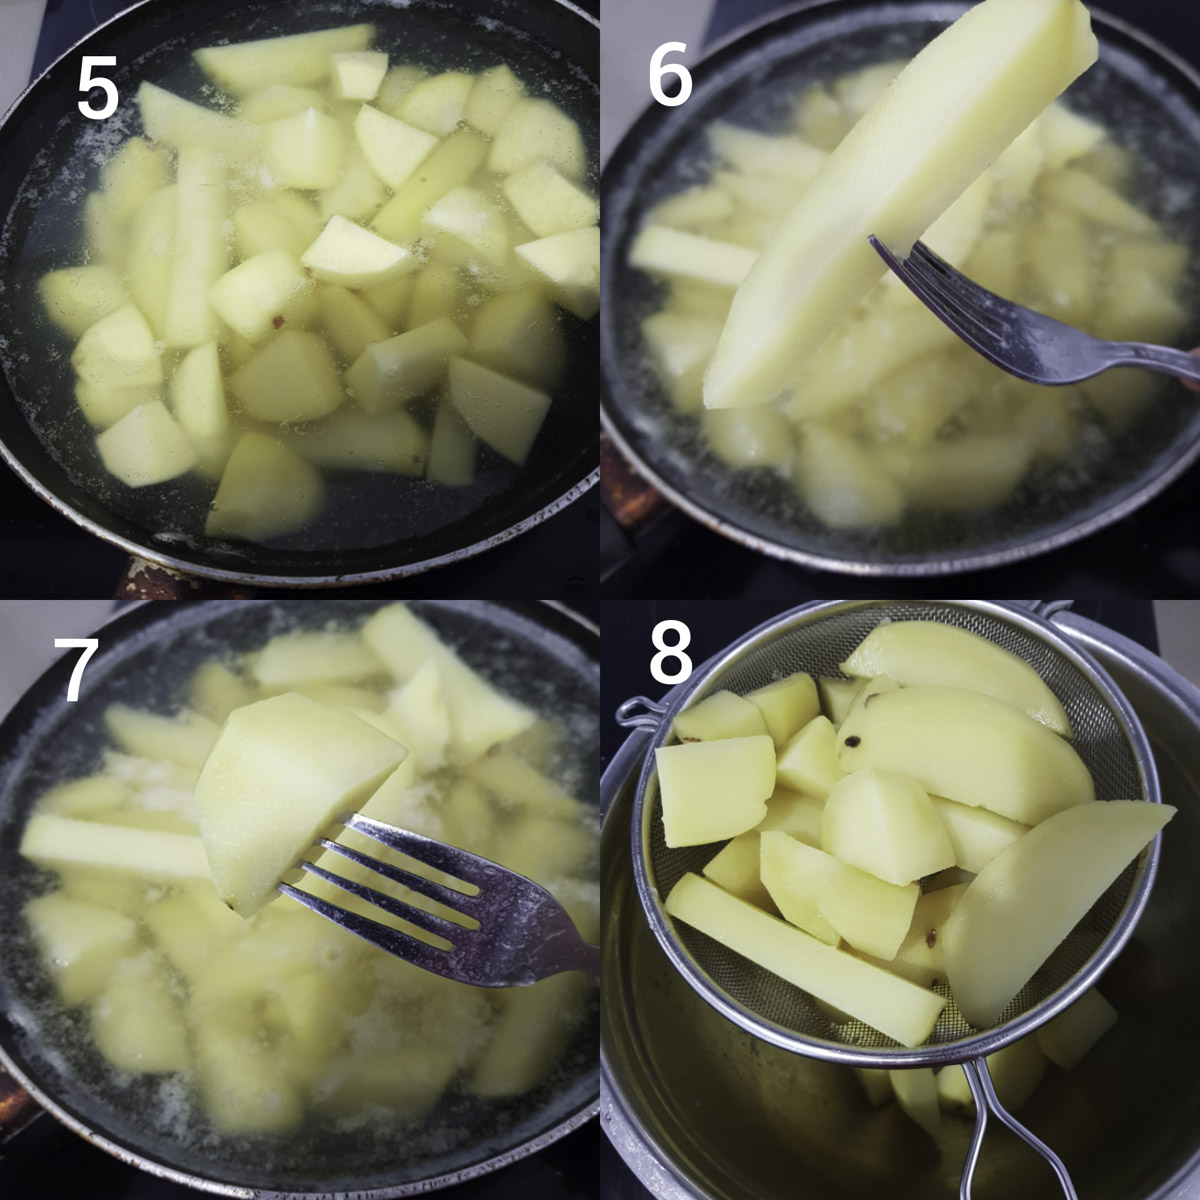 step by step instructions  collage for parboiling and testing potatoes